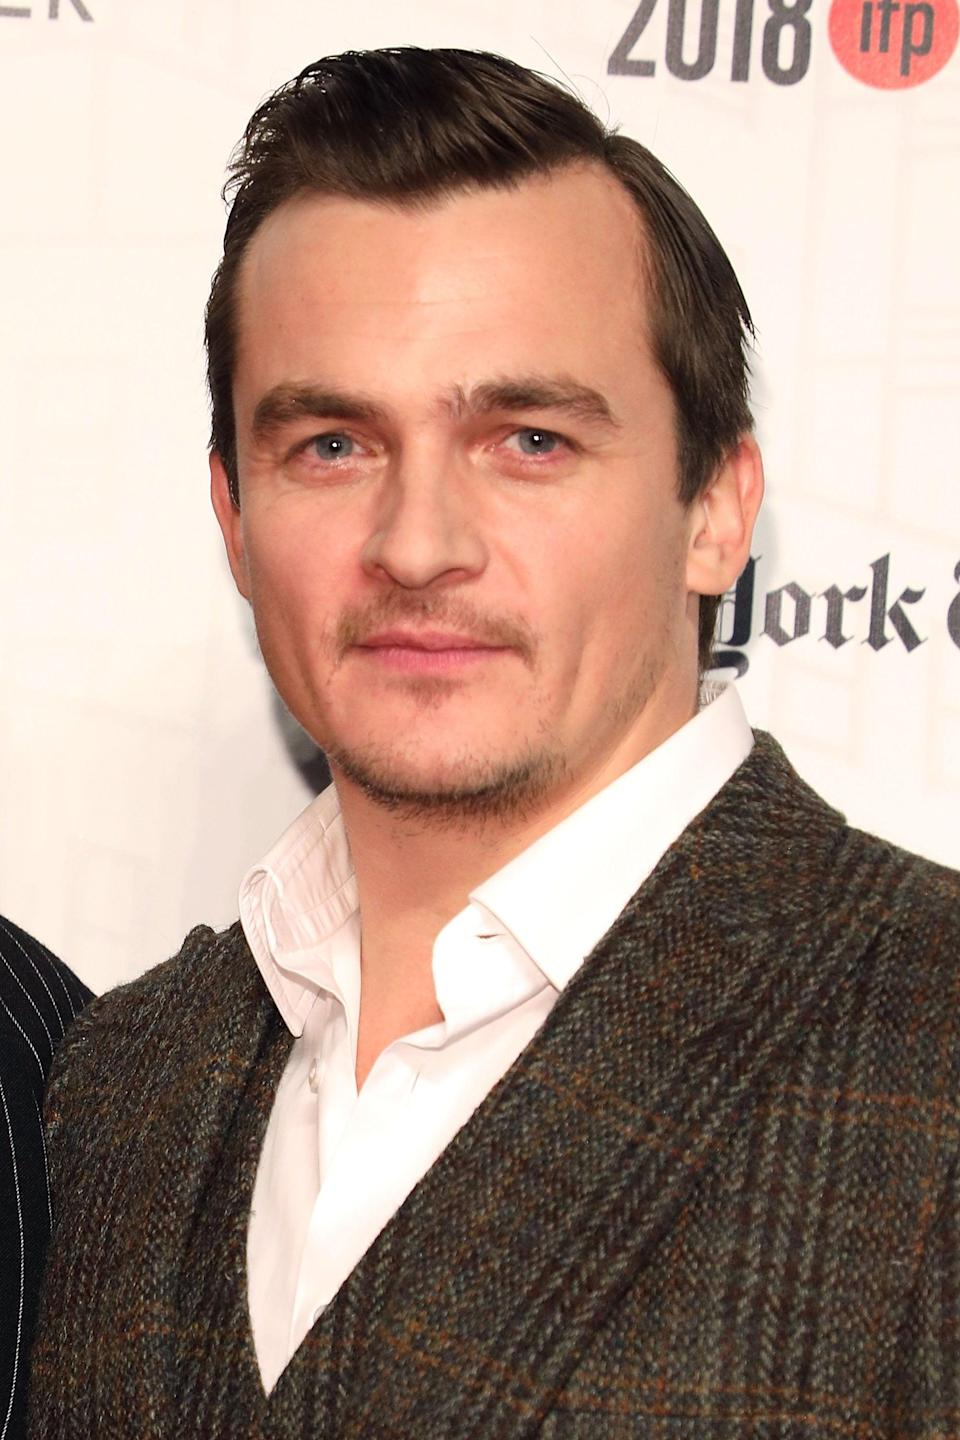 """<p>After an early career spent in British period dramas (he was Wickham in the <a class=""""link rapid-noclick-resp"""" href=""""https://www.popsugar.com/Keira-Knightley"""" rel=""""nofollow noopener"""" target=""""_blank"""" data-ylk=""""slk:Keira Knightley"""">Keira Knightley</a> <strong>Pride and Prejudice</strong>!), Friend has settled more into roles that combine drama with action. Most notably, he played Peter Quinn for several seasons of the espionage drama <strong>Homeland</strong>.</p>"""